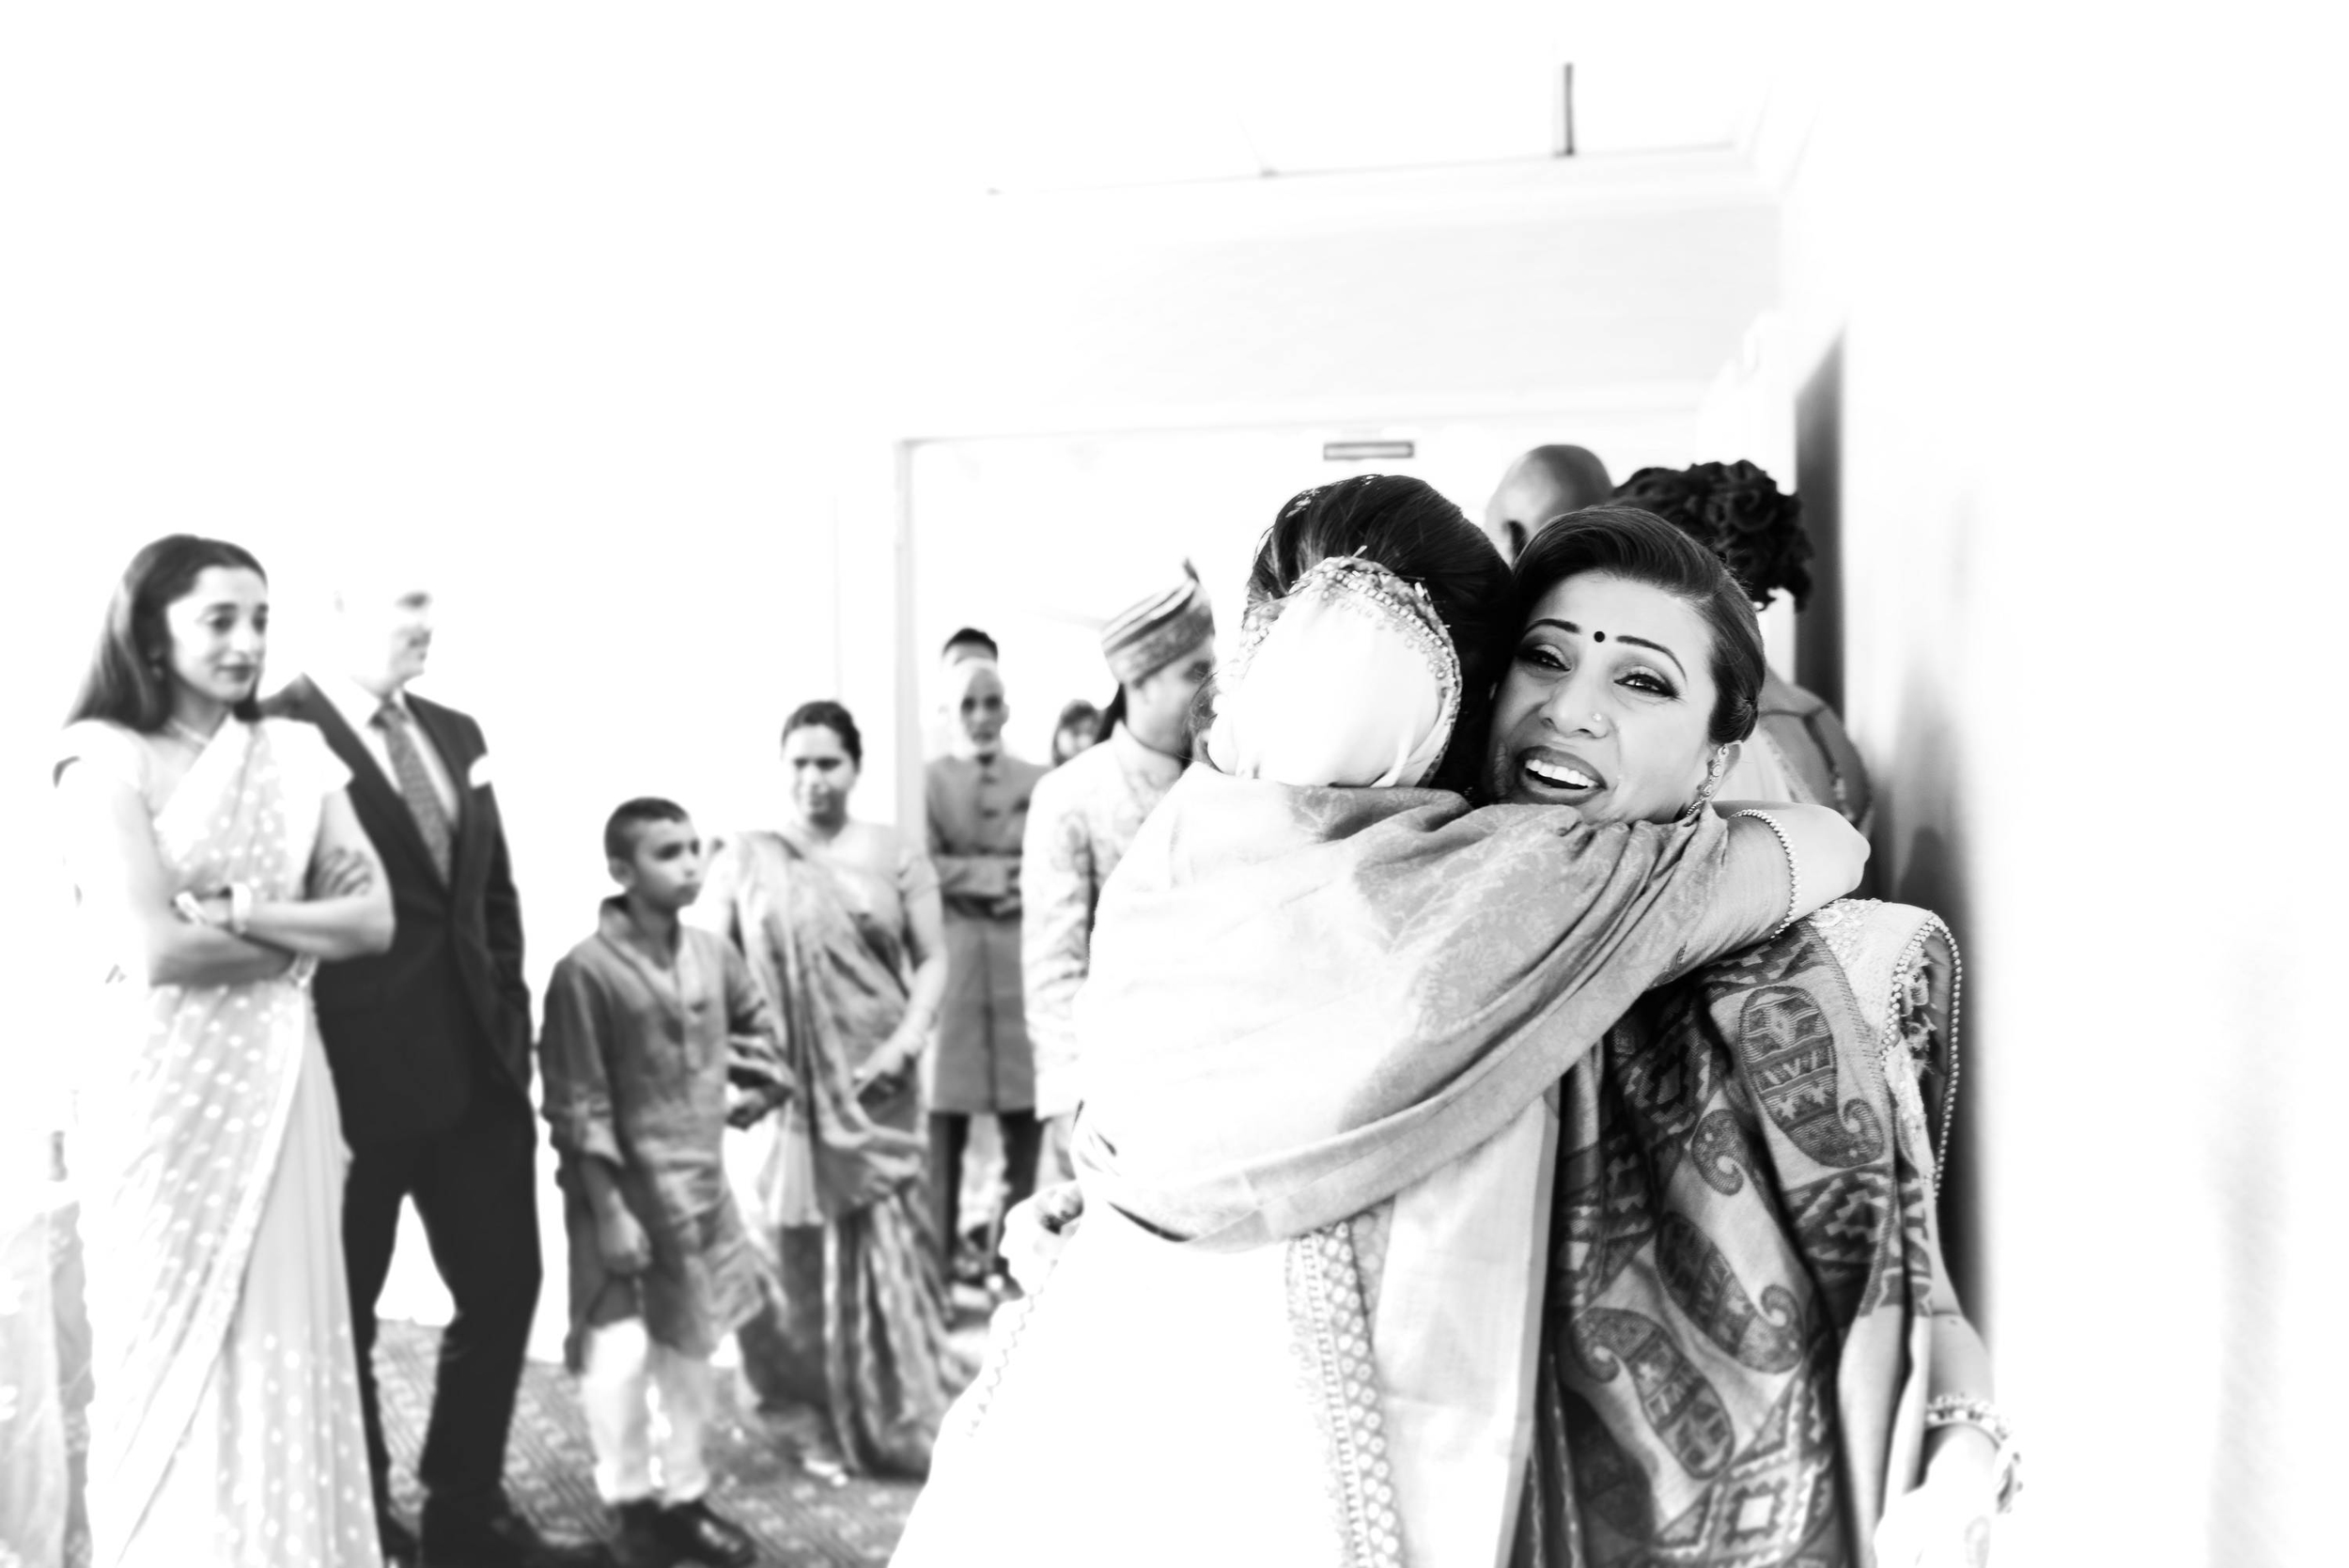 bidaai or wedding recessional is a very emotional moment during indian weddings. A moment we captured shared by the bride and bride's sister.